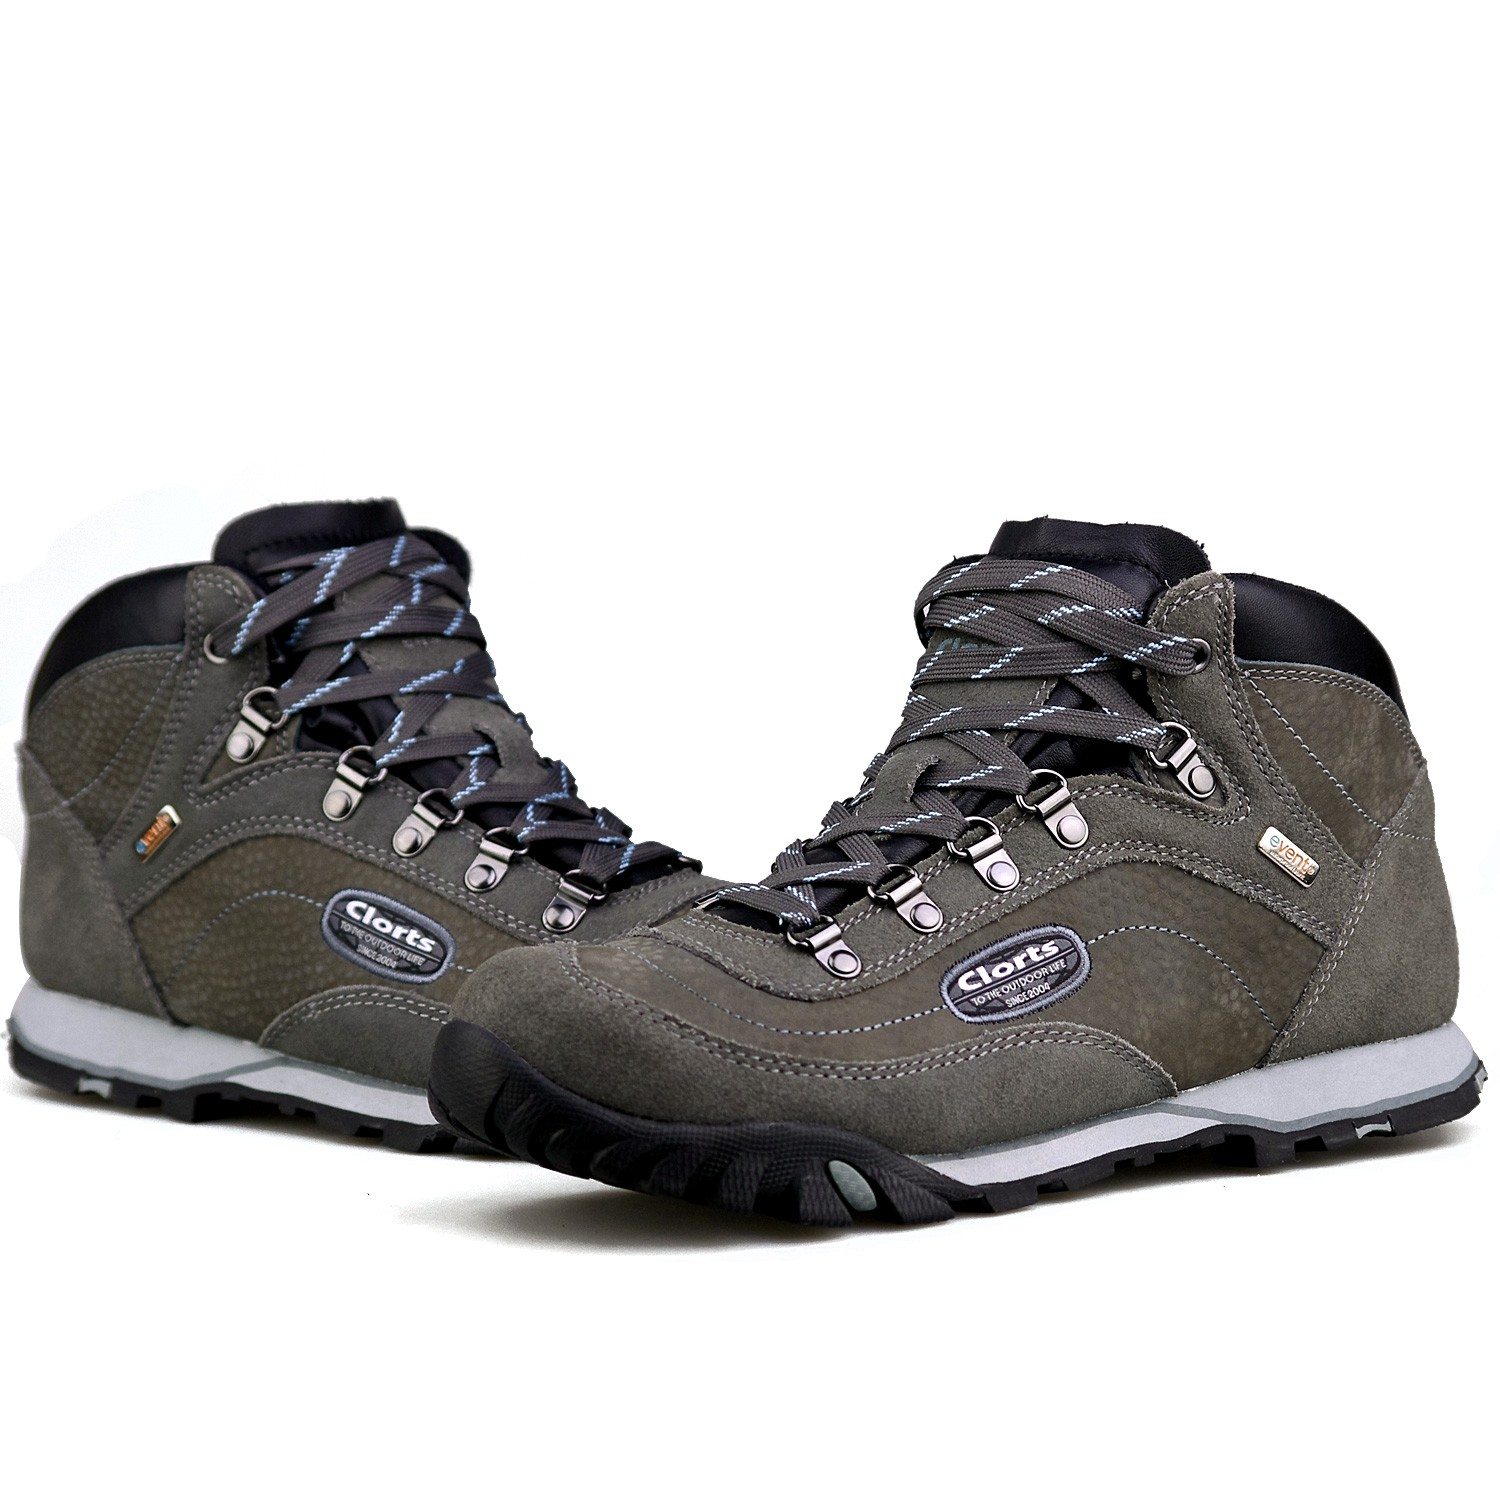 Mens Outdoor Hiking Shoes And Boots Manufacturers, Mens Outdoor Hiking Shoes And Boots Factory, Supply Mens Outdoor Hiking Shoes And Boots